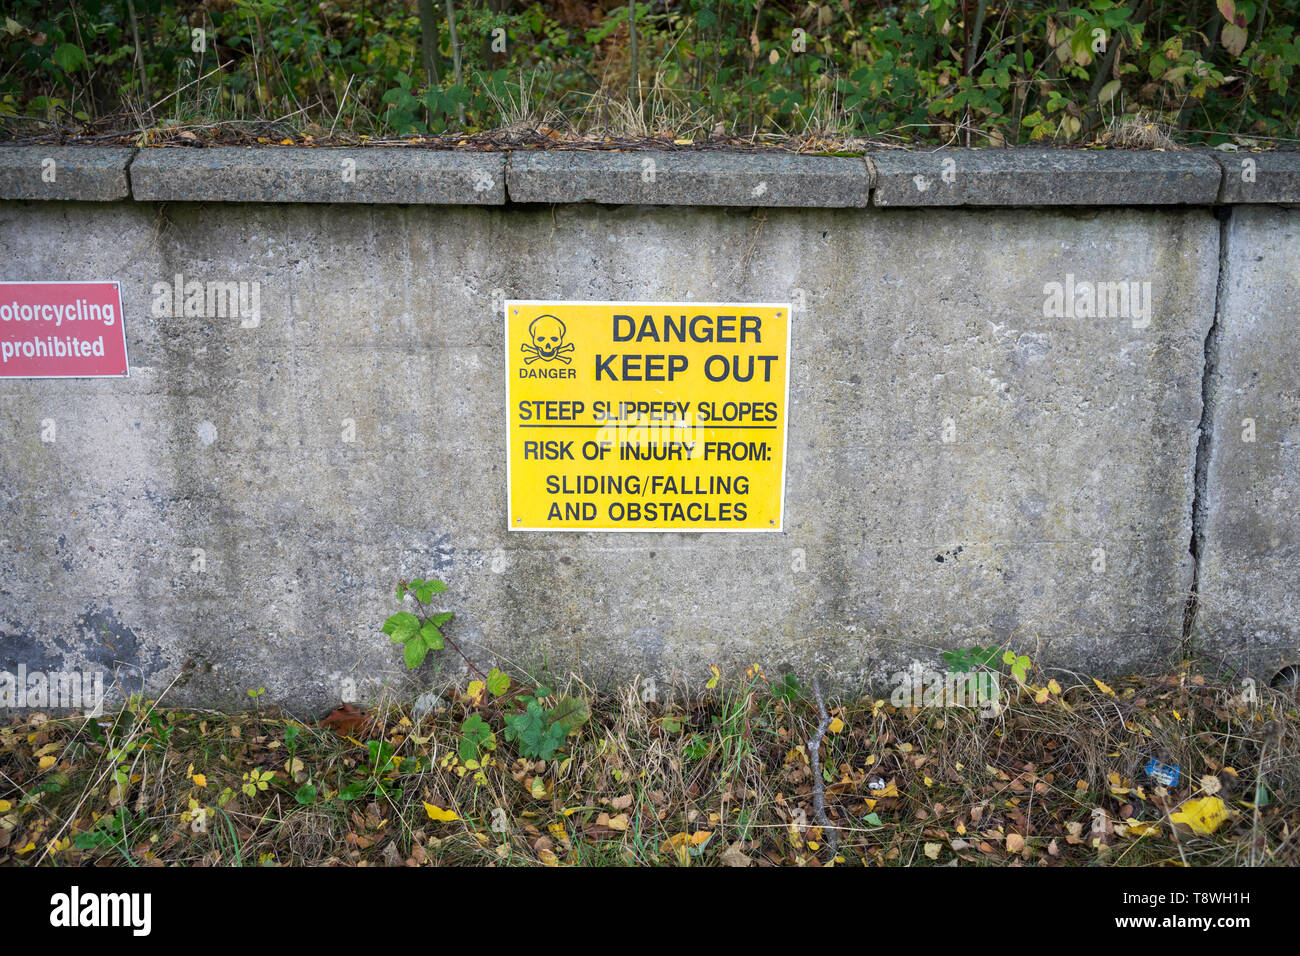 Danger, Keep Out Sign, Skeleton, Warning, Risk of Injury - Stock Image